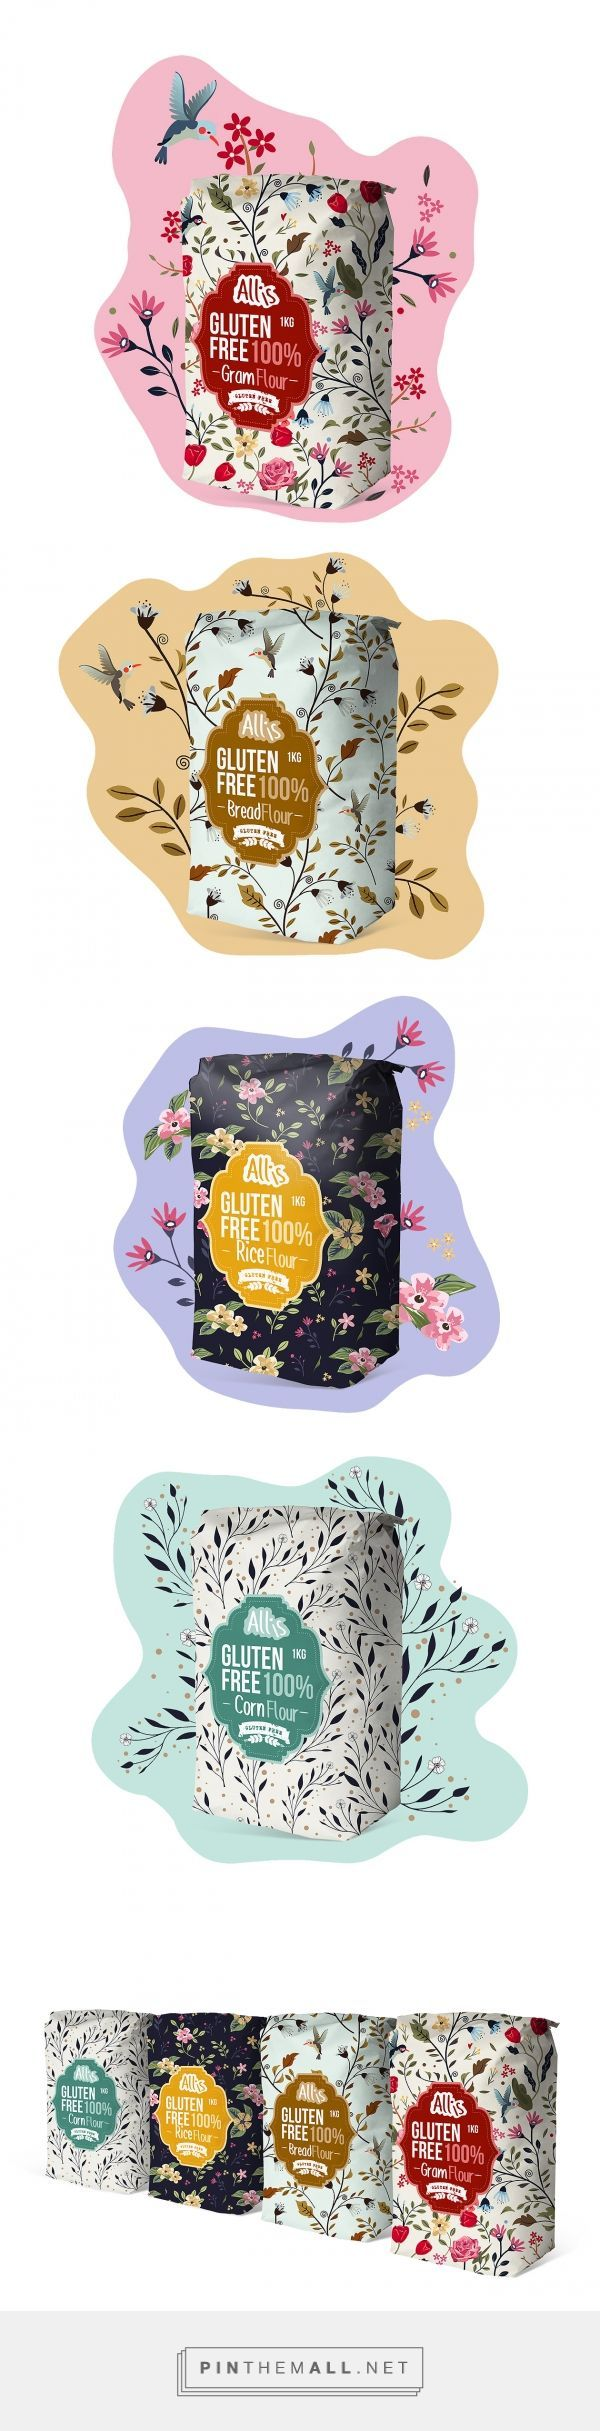 Allis Gluten Free packaging design by MAISON D'IDÉE curated by Packaging Diva PD. Wow, what flour packaging!